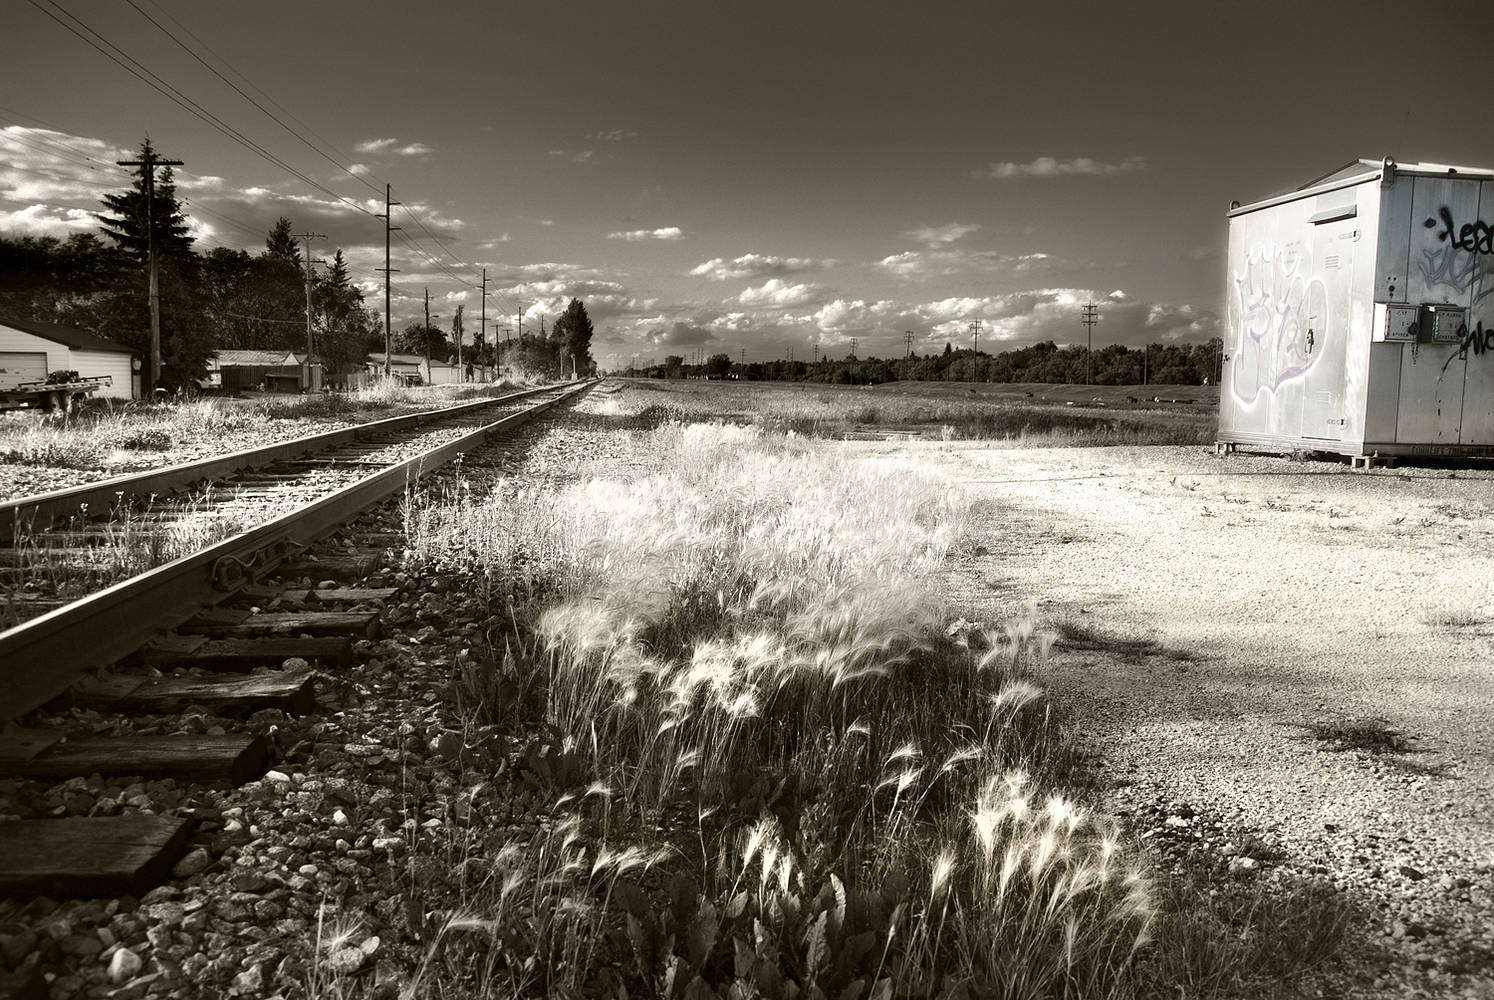 Railway tracks & Foxtails by Jim Friesen